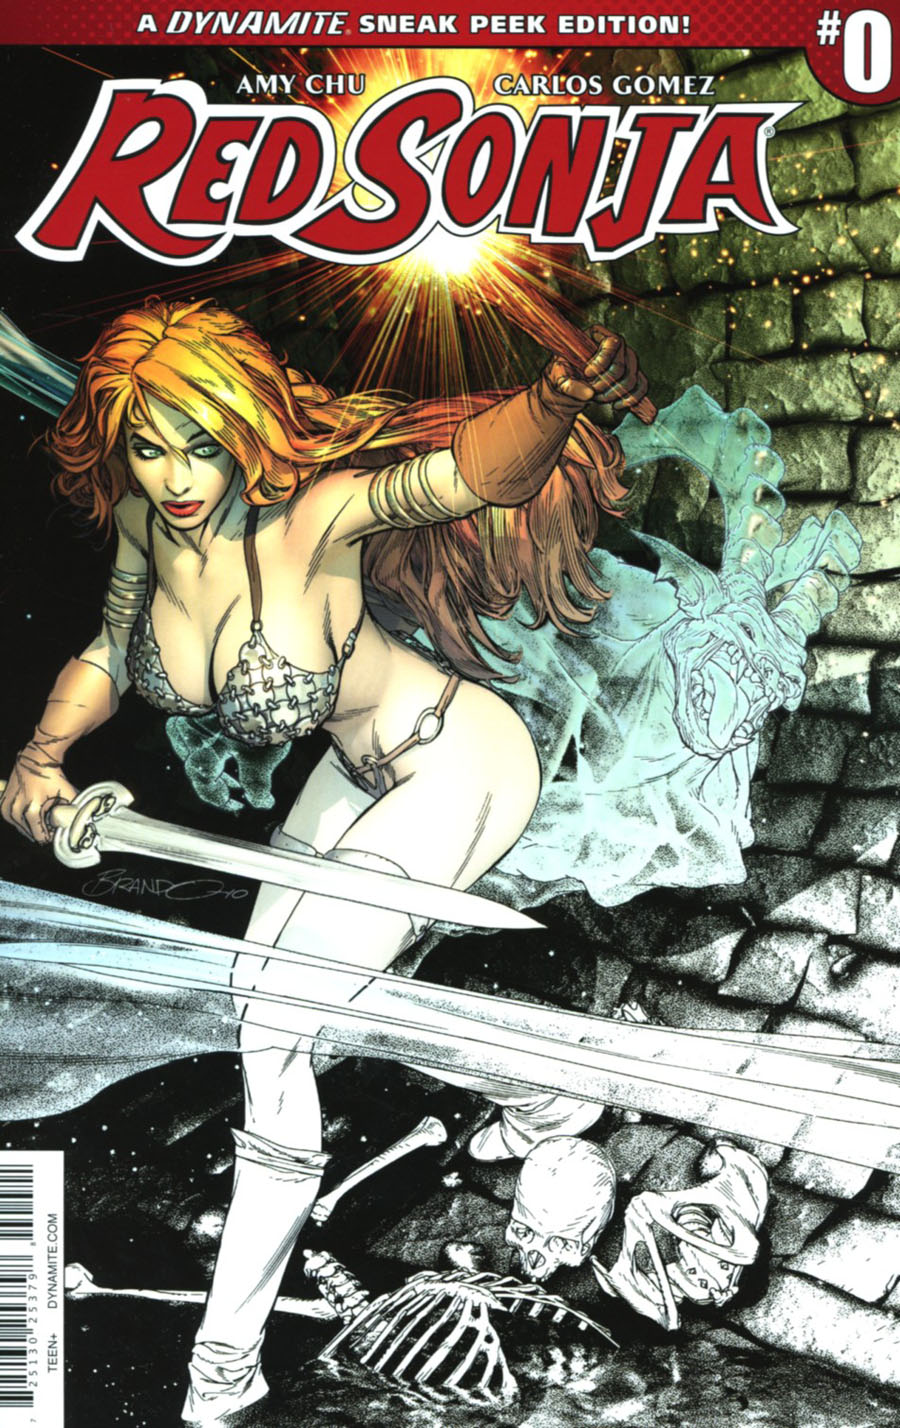 Red Sonja Vol 7 #0 Cover B Incentive Brandon Peterson Sneak Peek Variant Cover